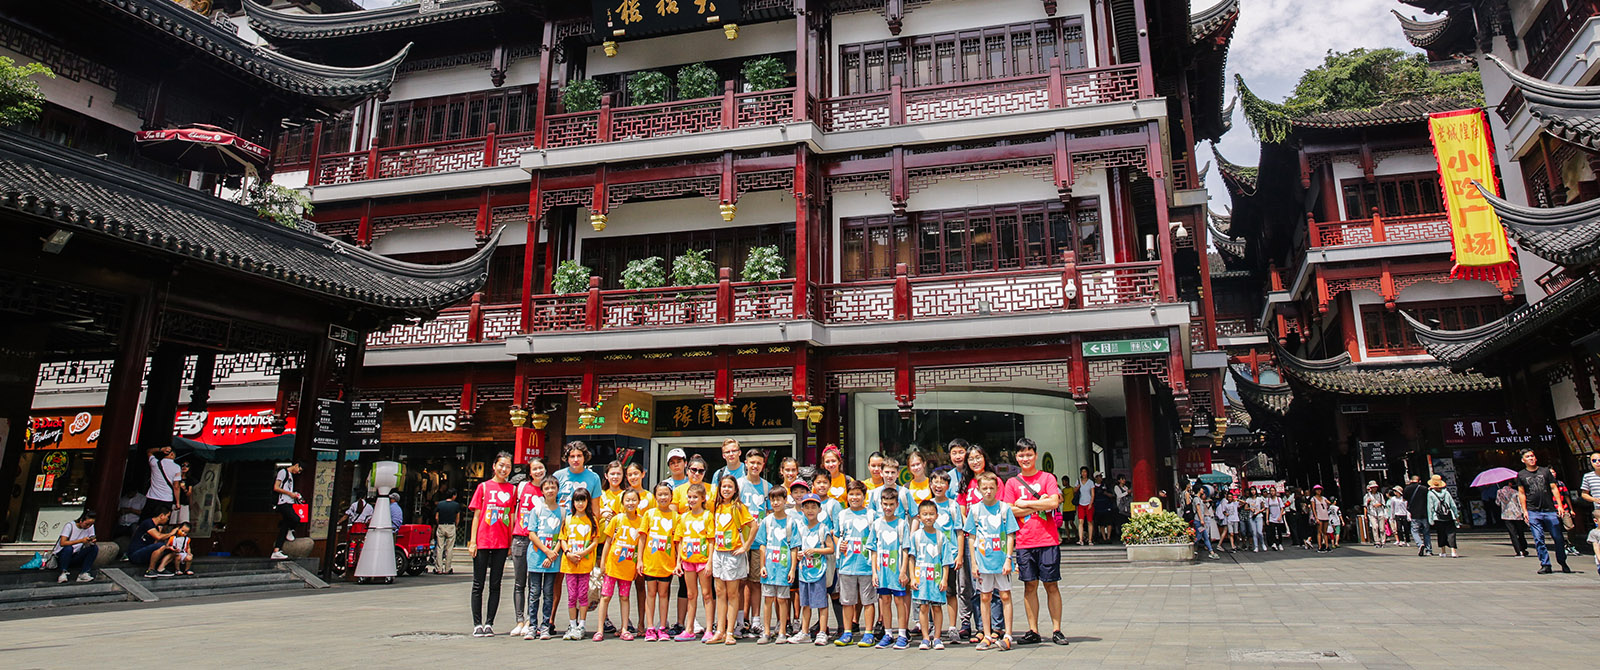 where to study Mandarin in China? | China - Lonely Planet ...